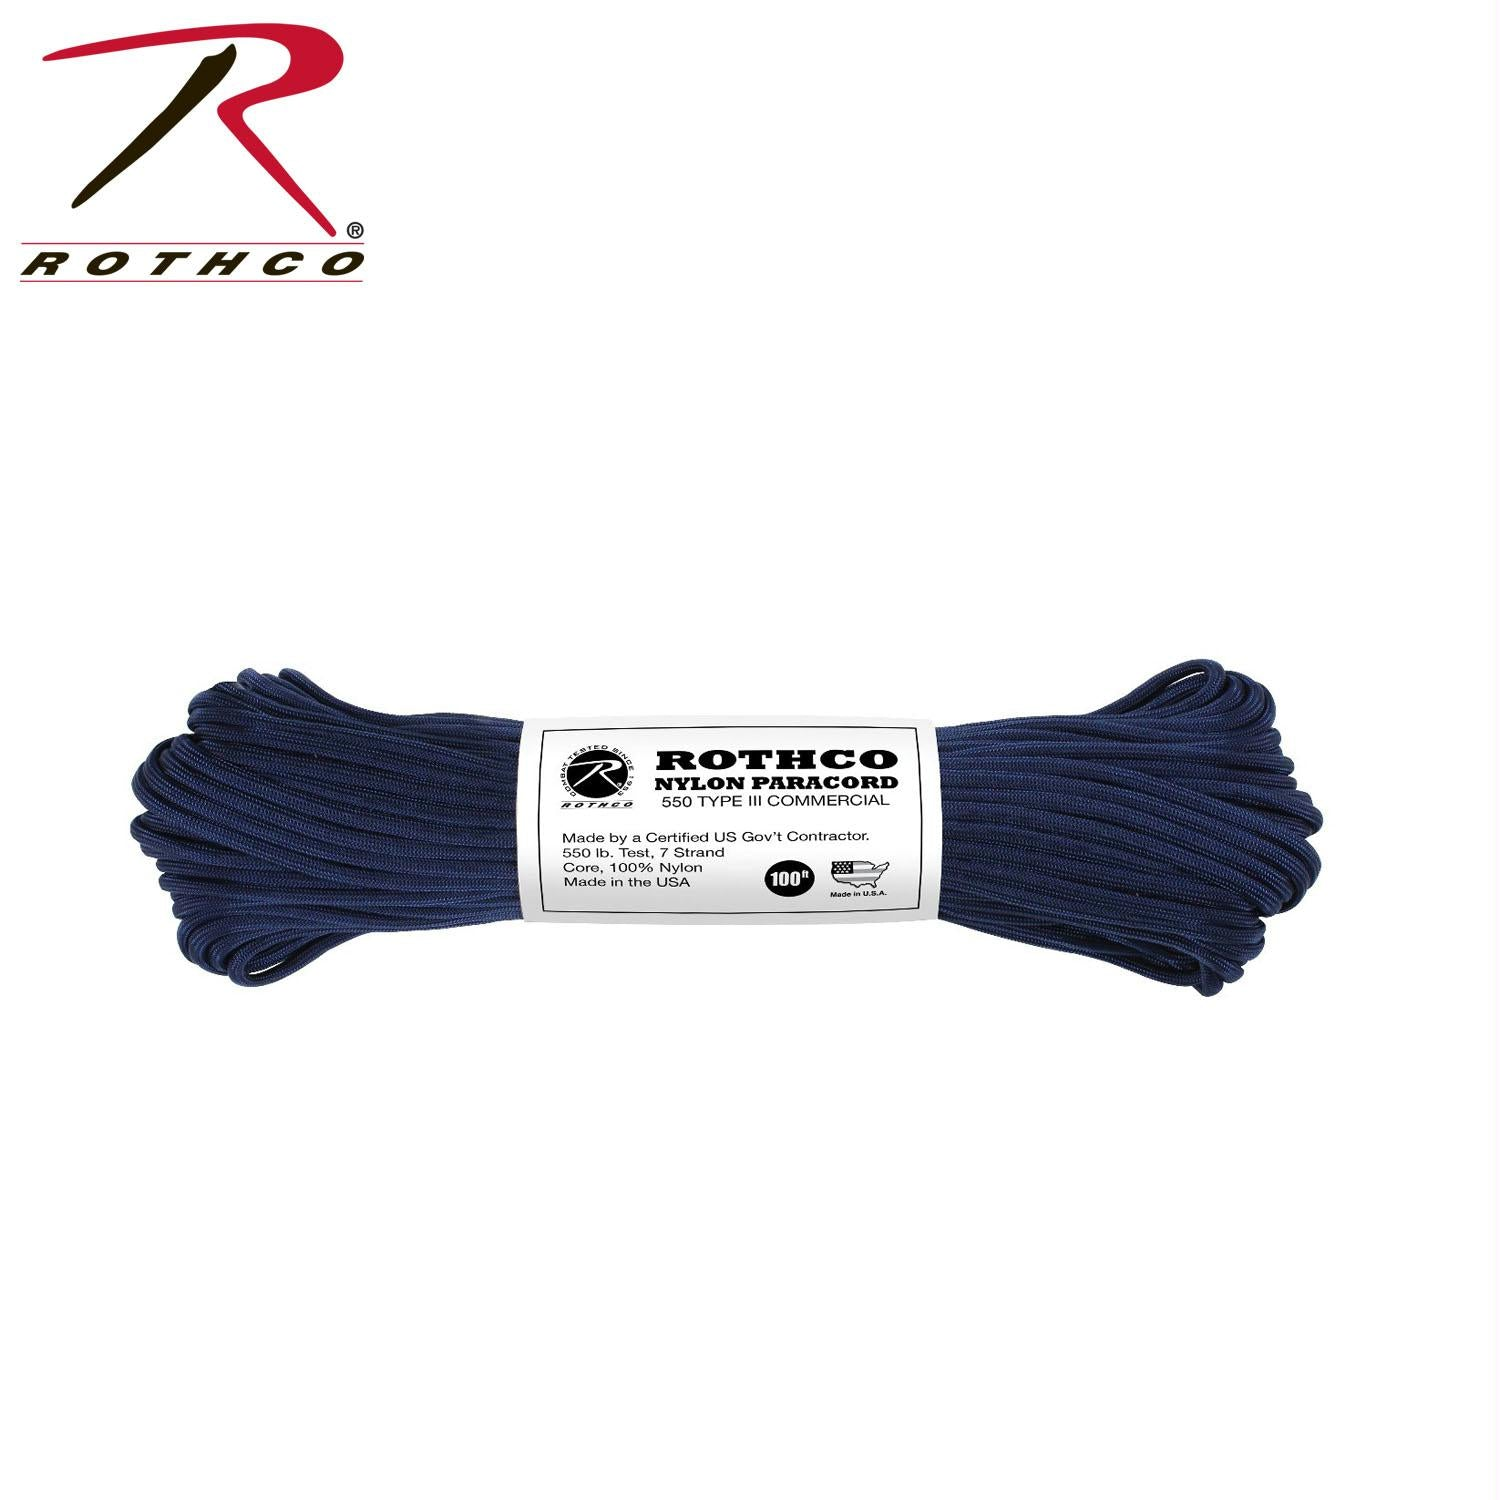 Rothco Nylon Paracord Type III 550 LB 100FT - Midnight Navy Blue